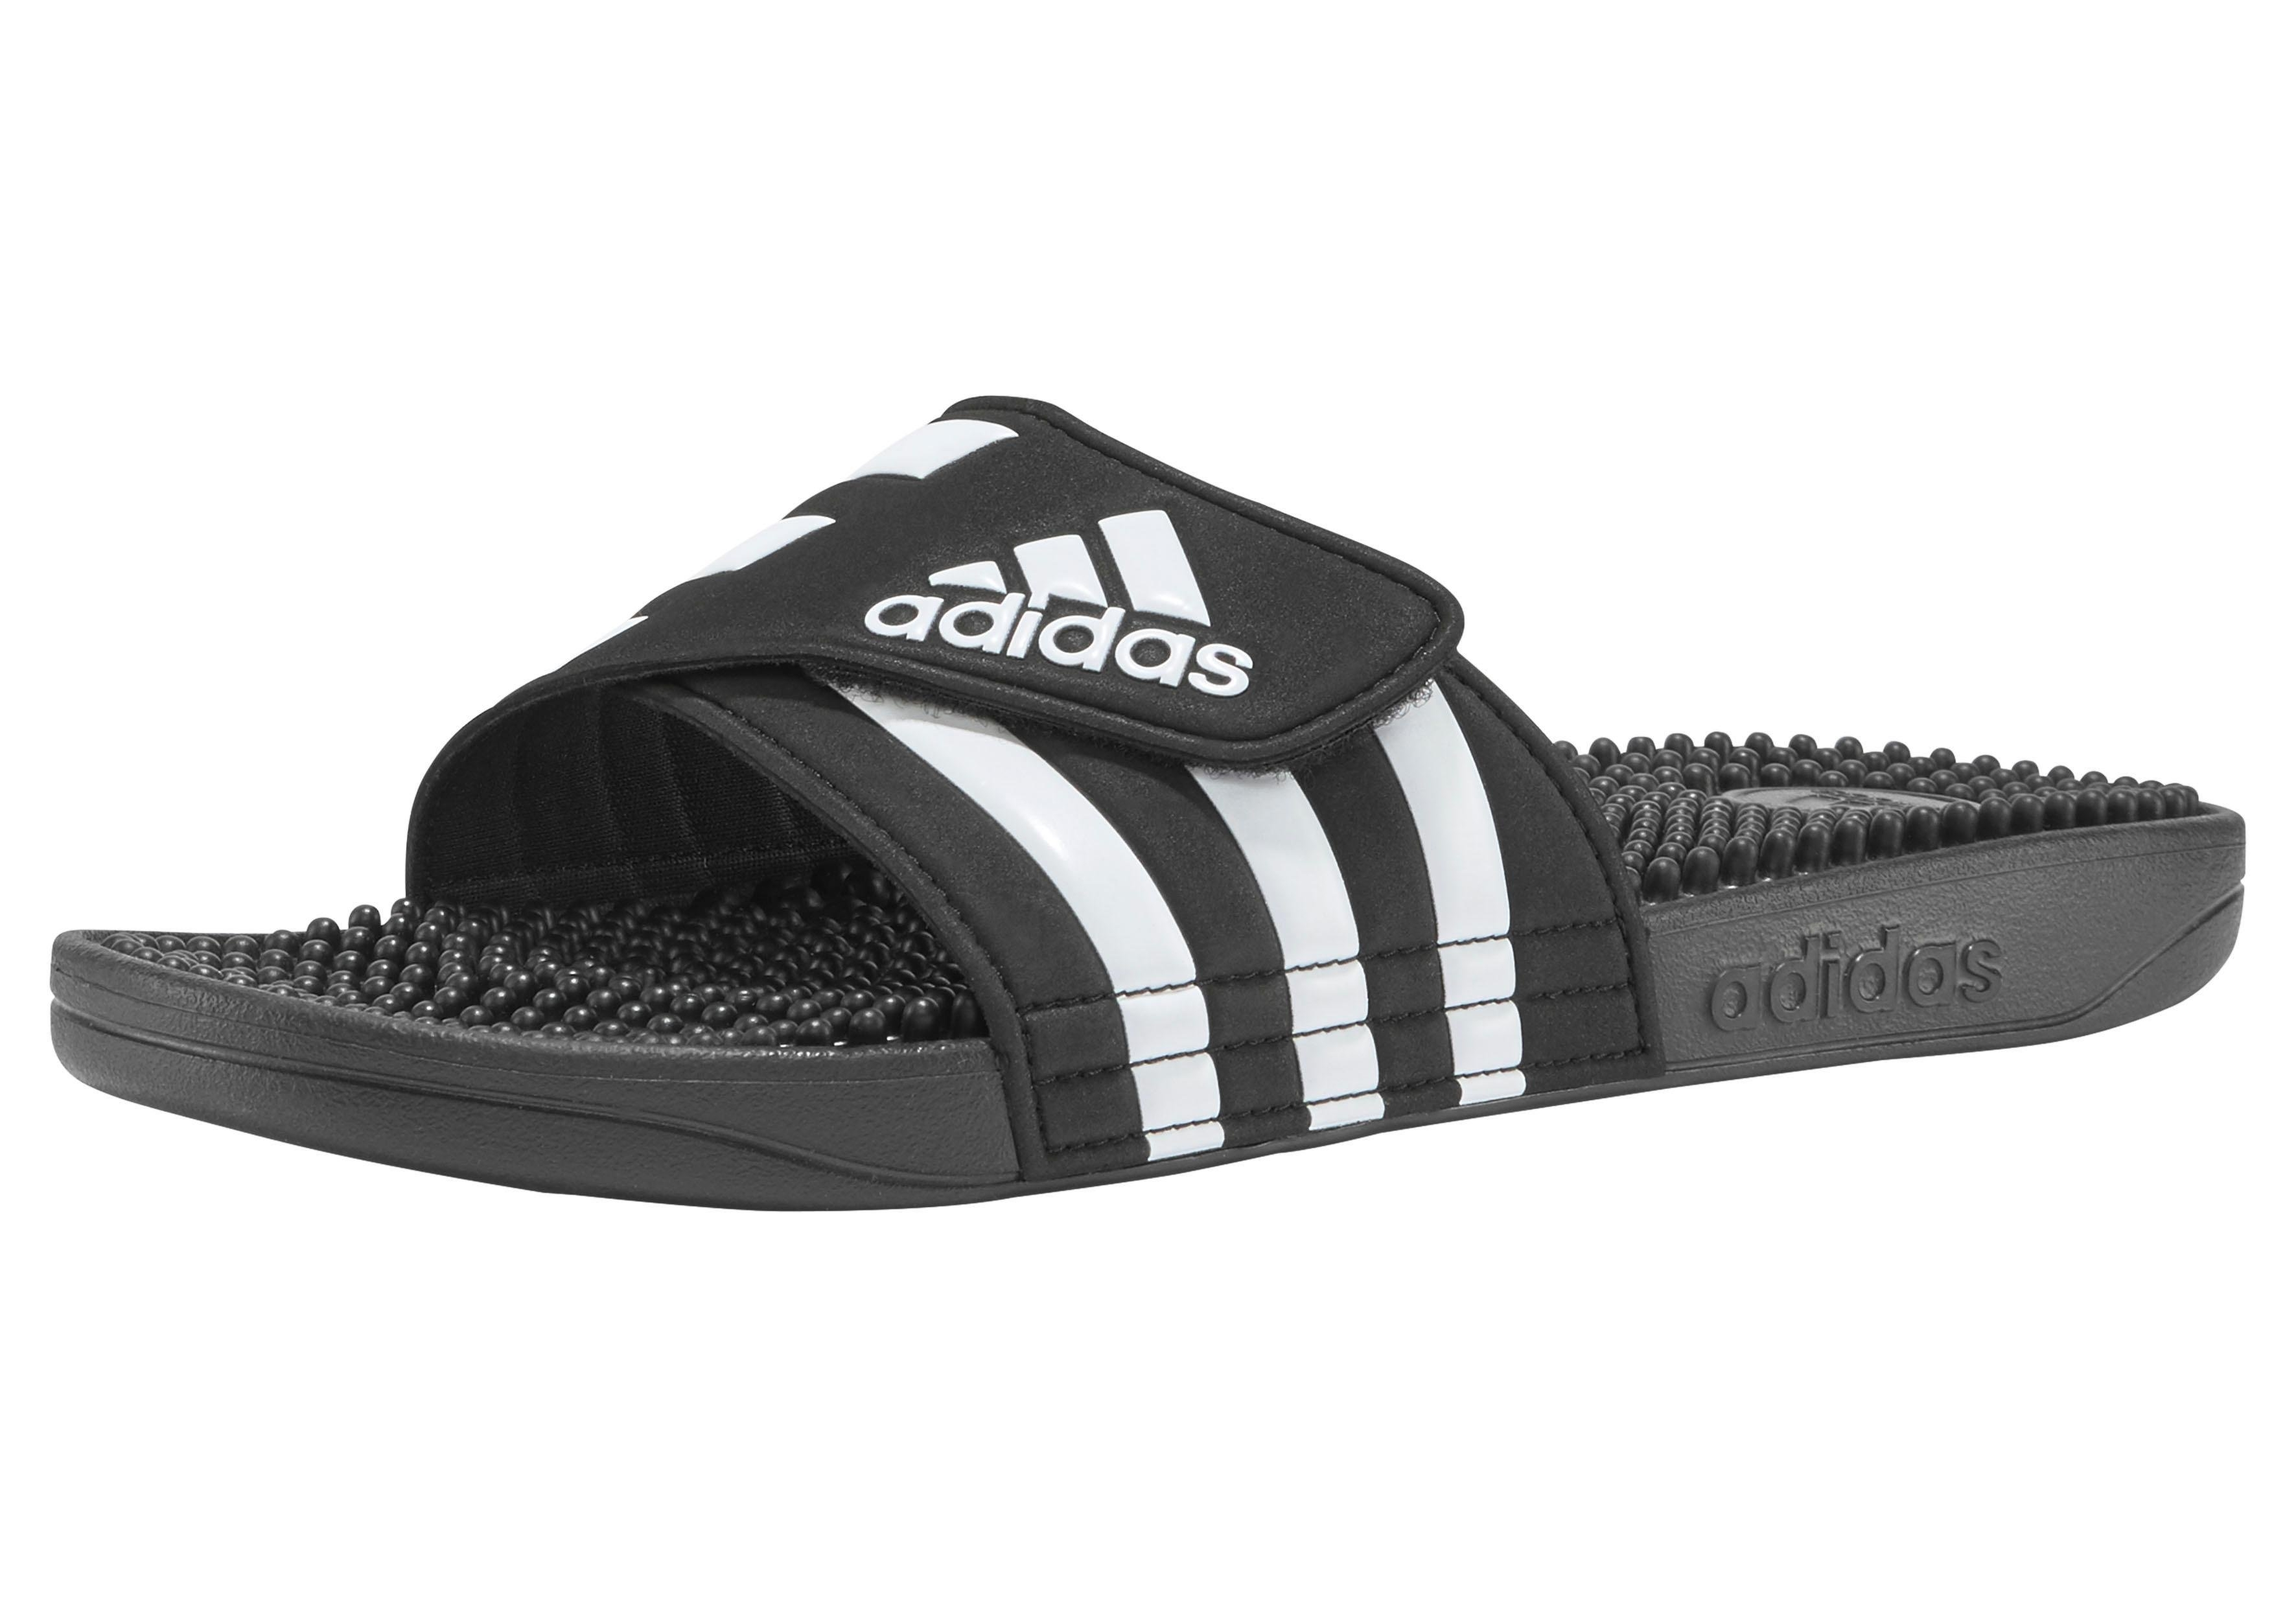 adidas Performance adidas badslippers »Adissage« online kopen op otto.nl